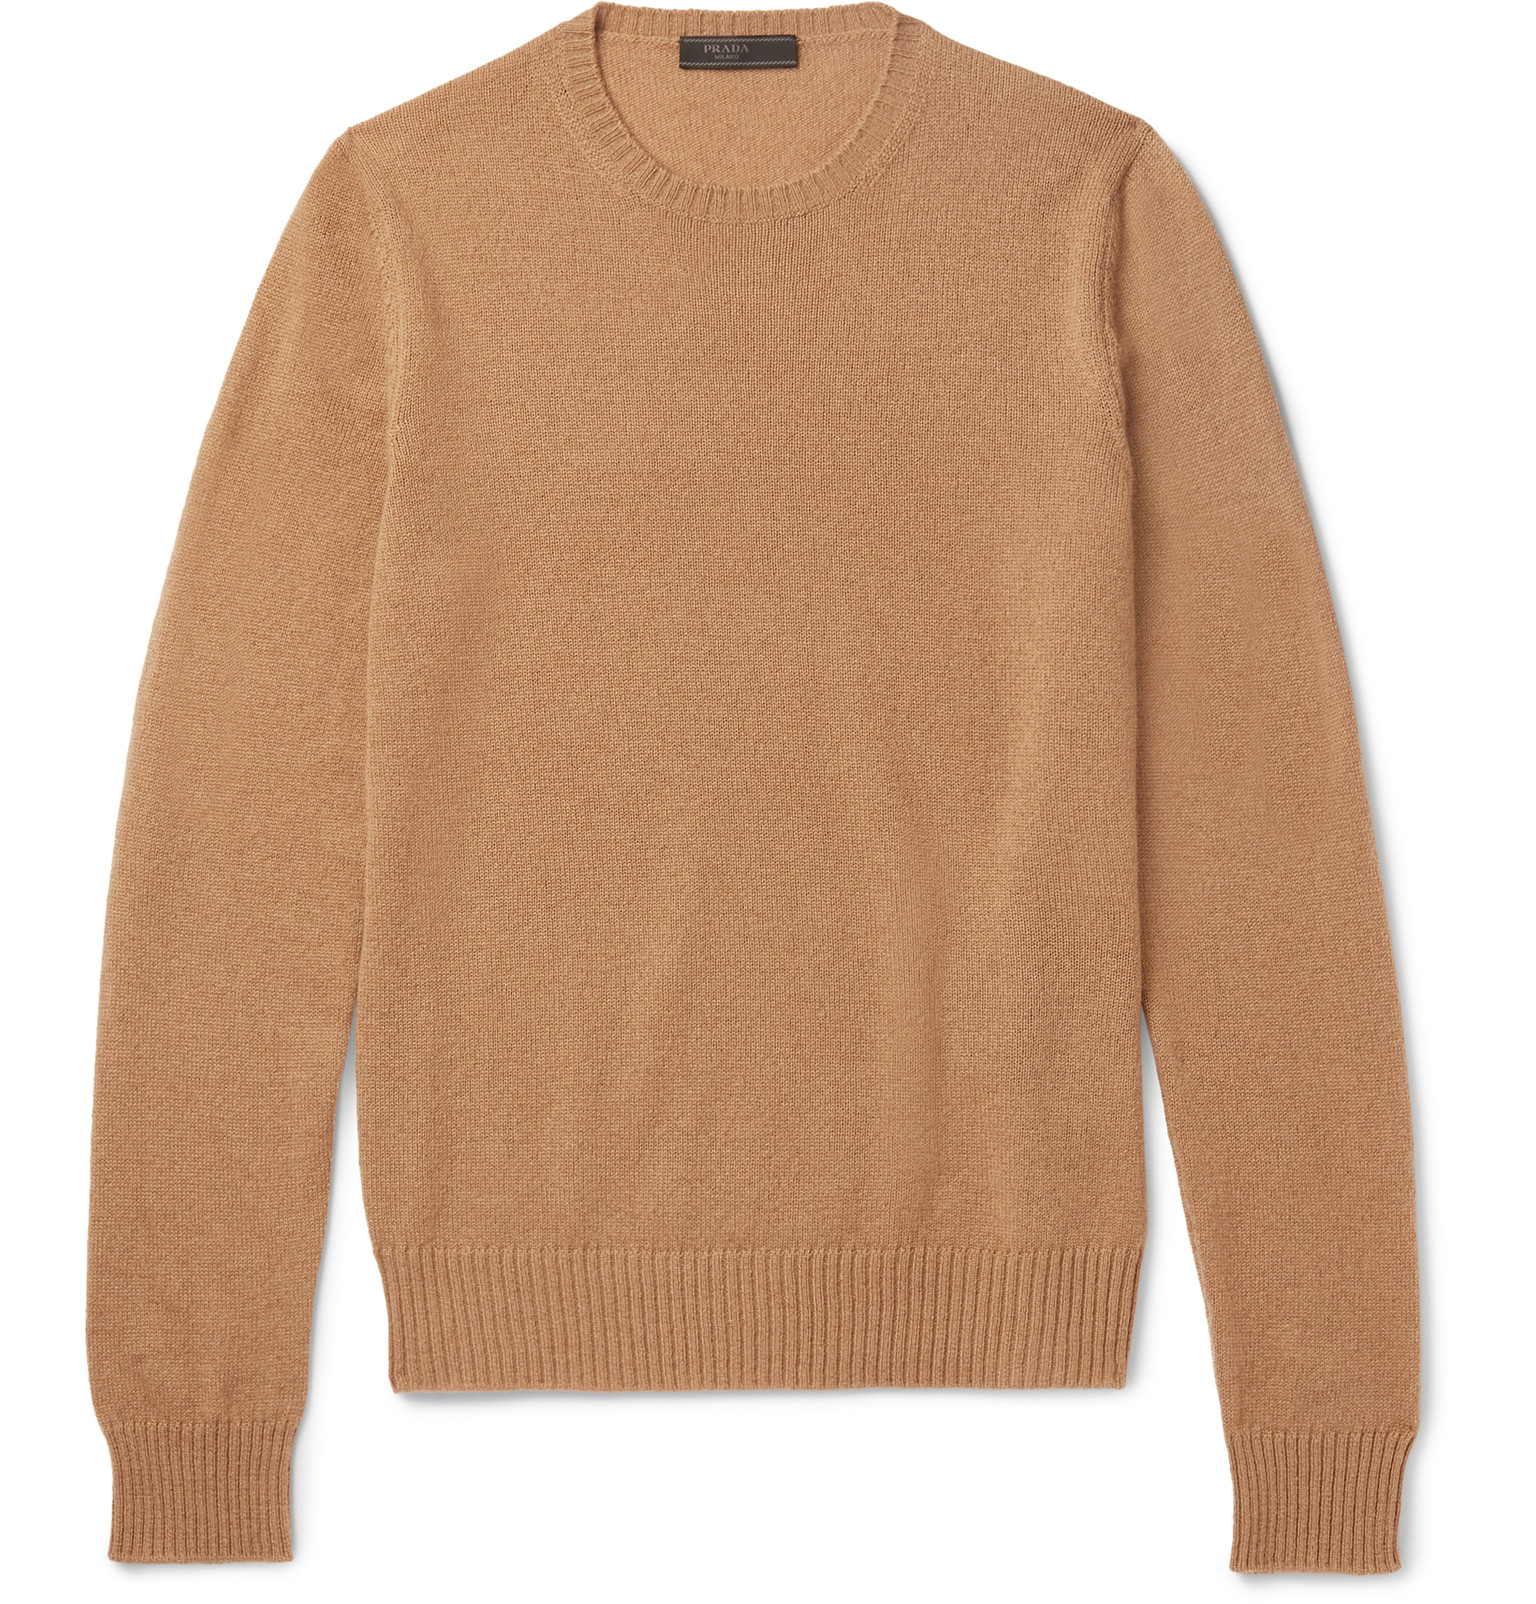 Prada - Cashmere Sweater